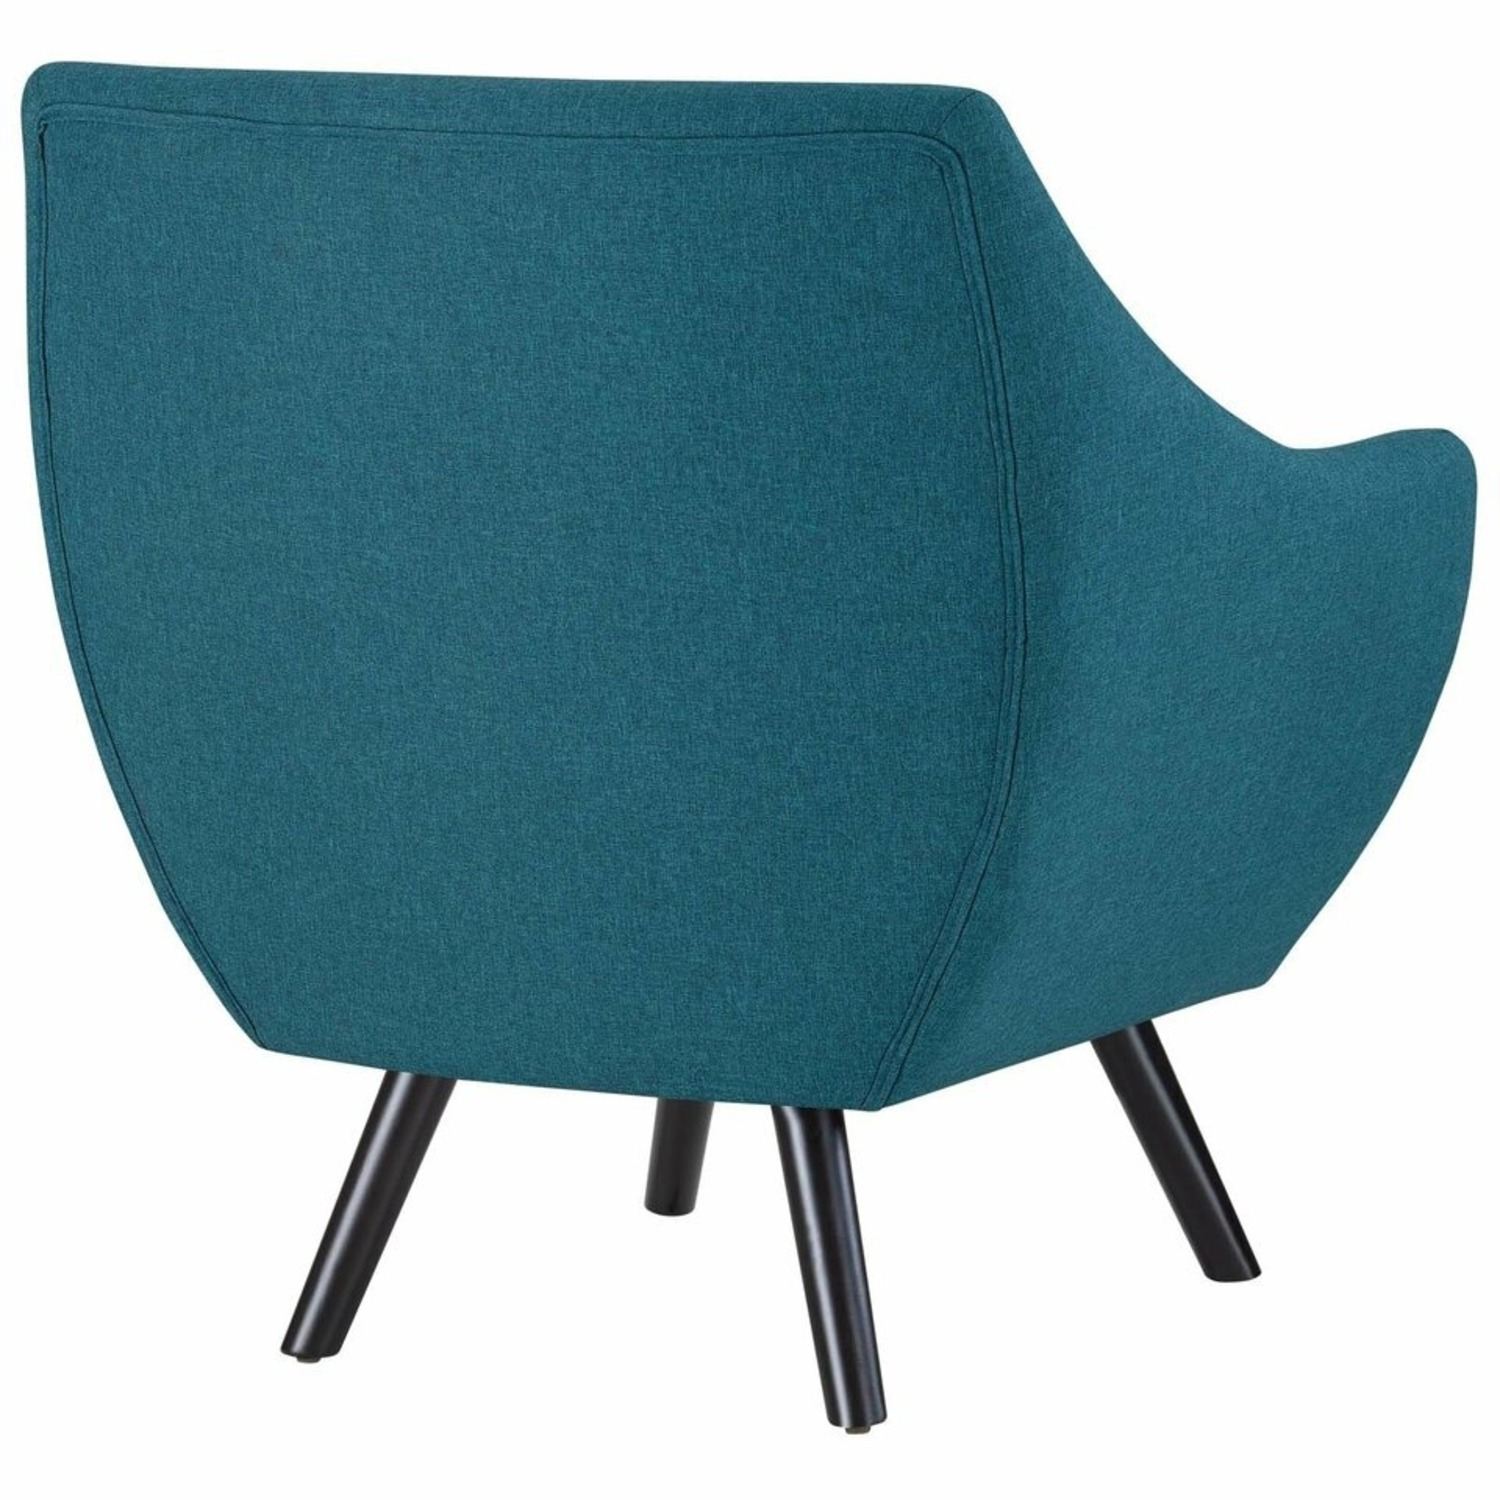 Armchair In Teal Fabric & Tufted Button Upholstery - image-3